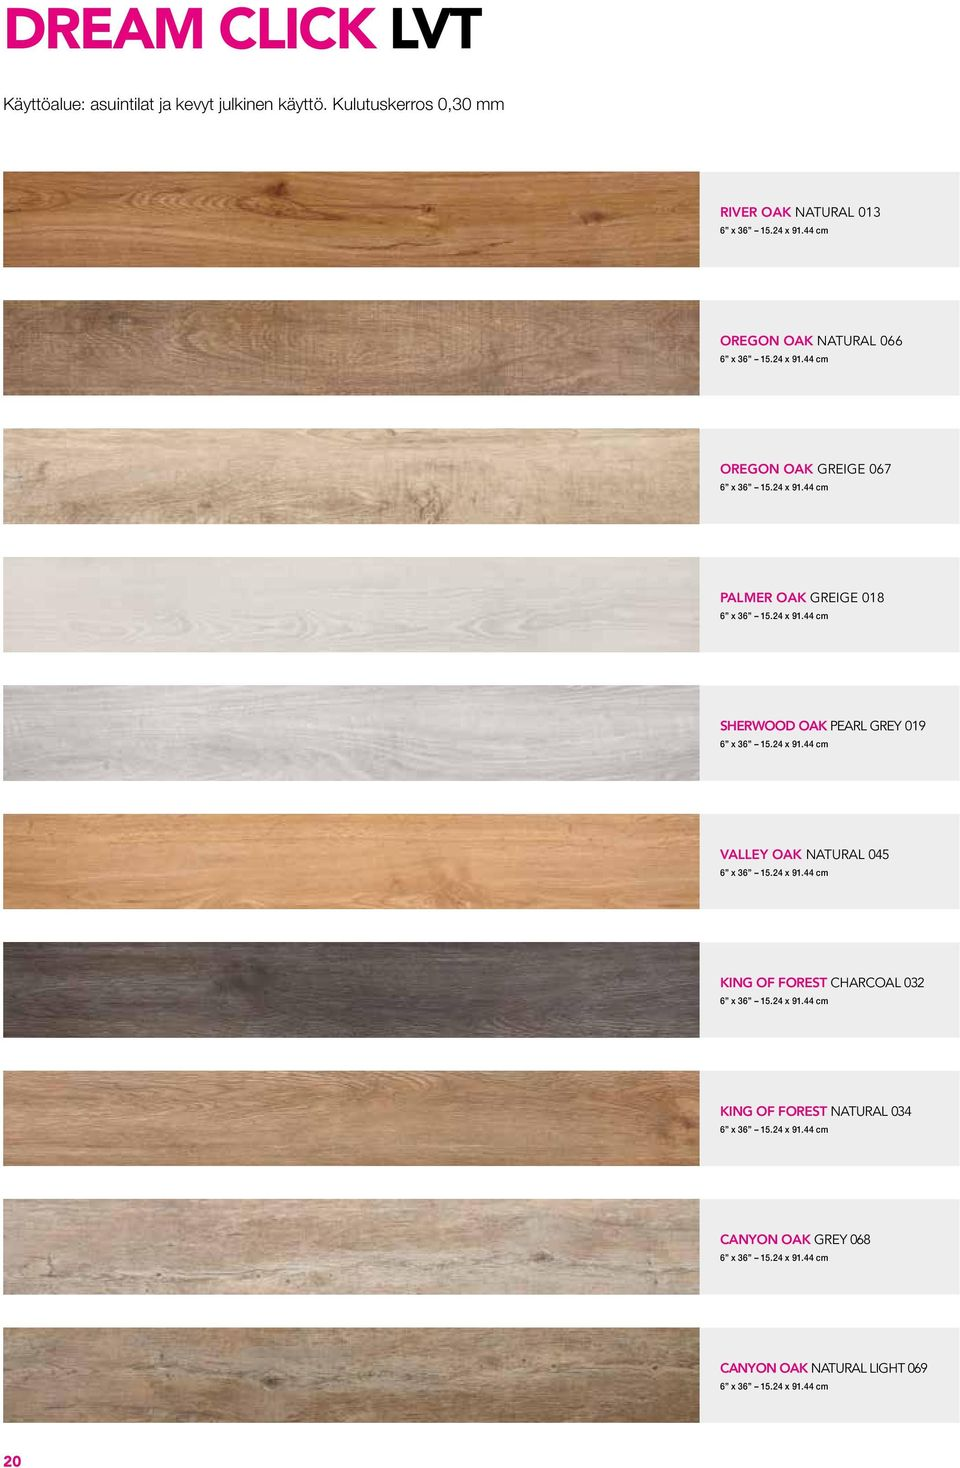 GREIGE 067 PALMER OAK GREIGE 018 SHERWOOD OAK PEARL GREY 019 VALLEY OAK NATURAL 045